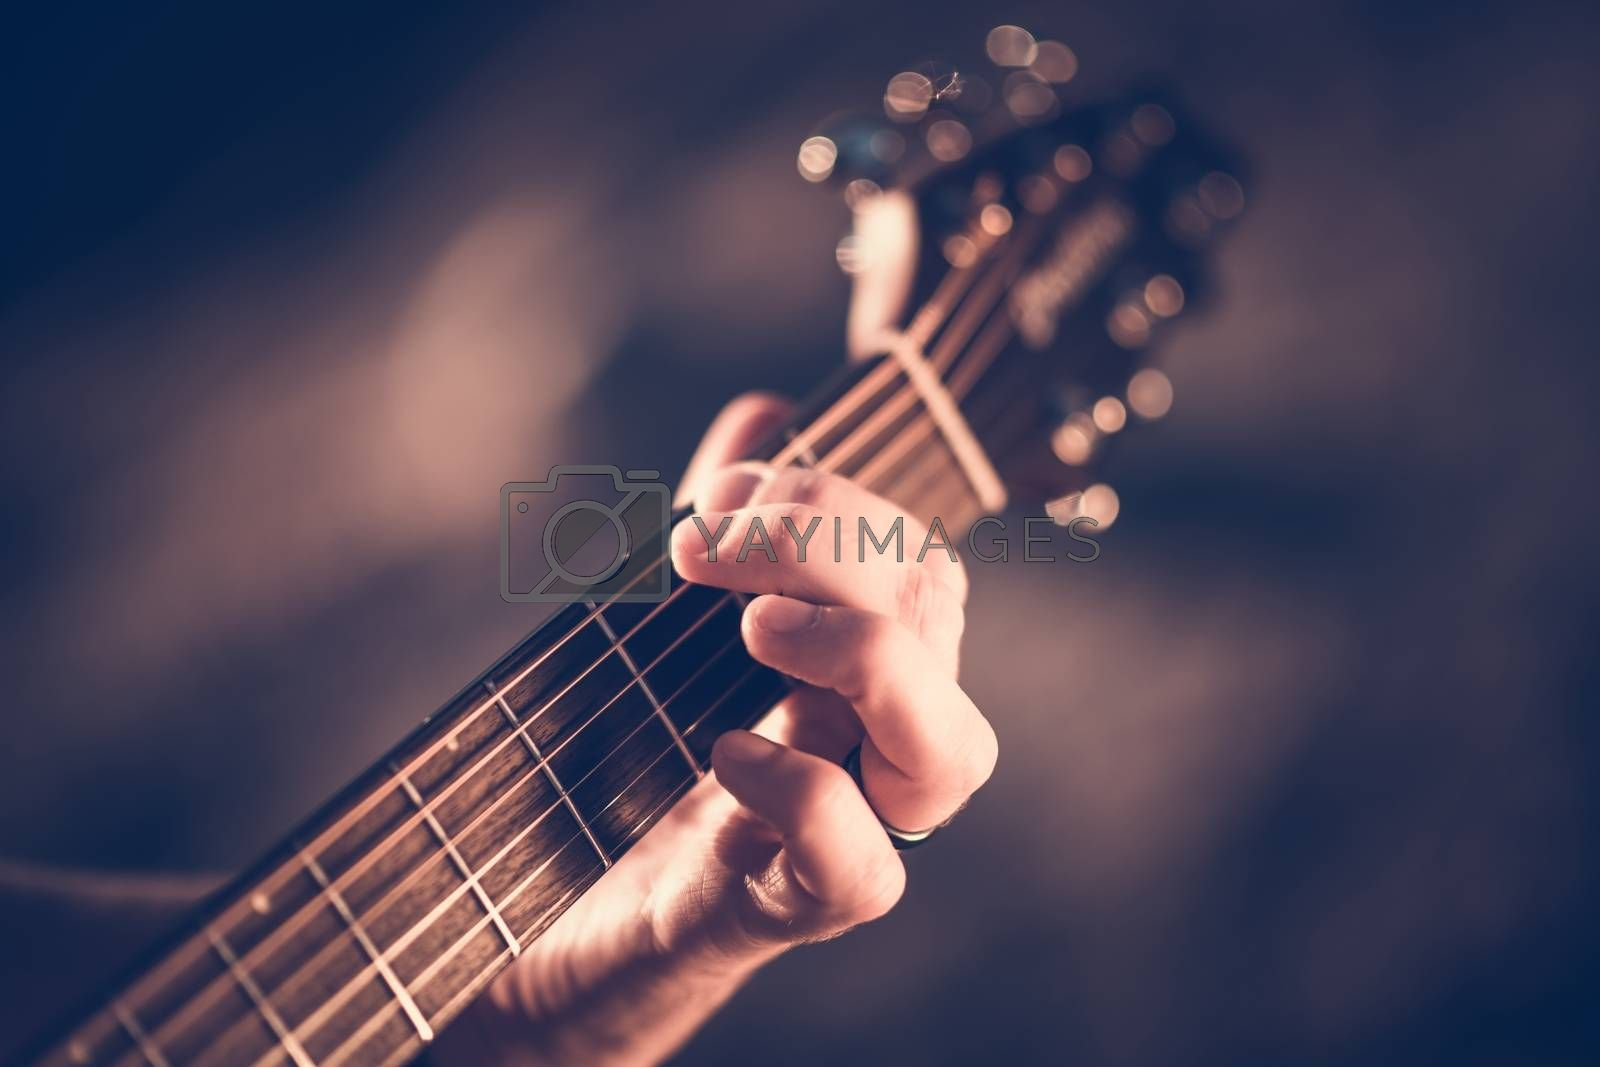 Royalty free image of Learning Acoustic Guitar  by welcomia